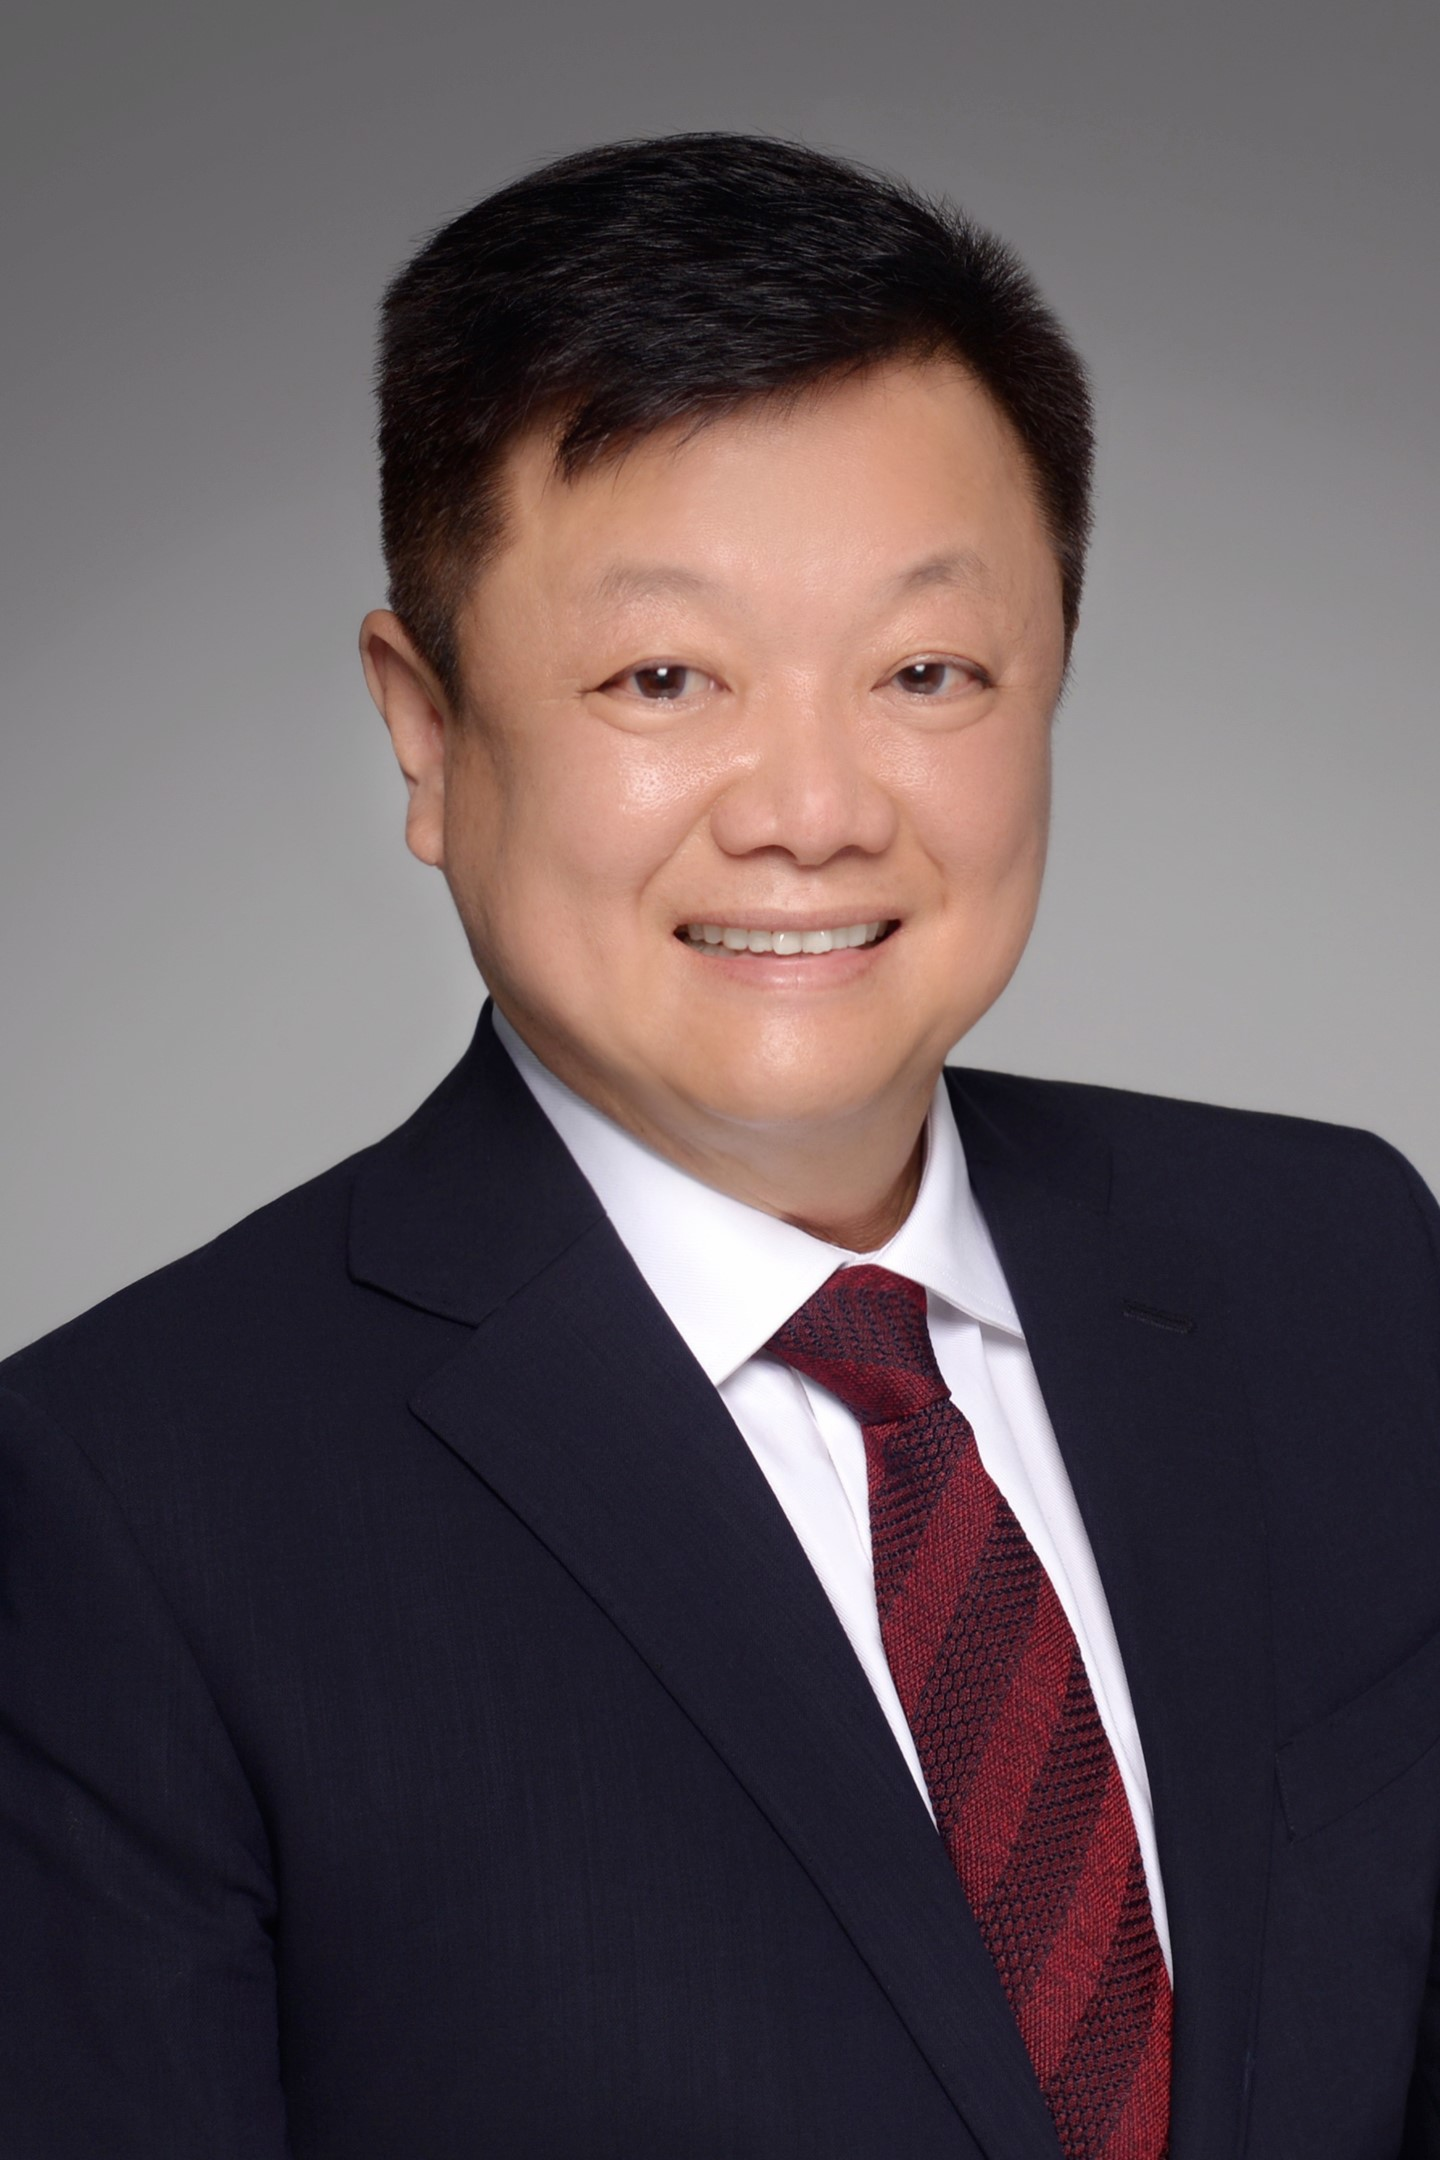 Dennis Yeo is chief executive for Singapore and Southeast Asia for Cushman & Wakefield (Photo: Cushman & Wakefield)